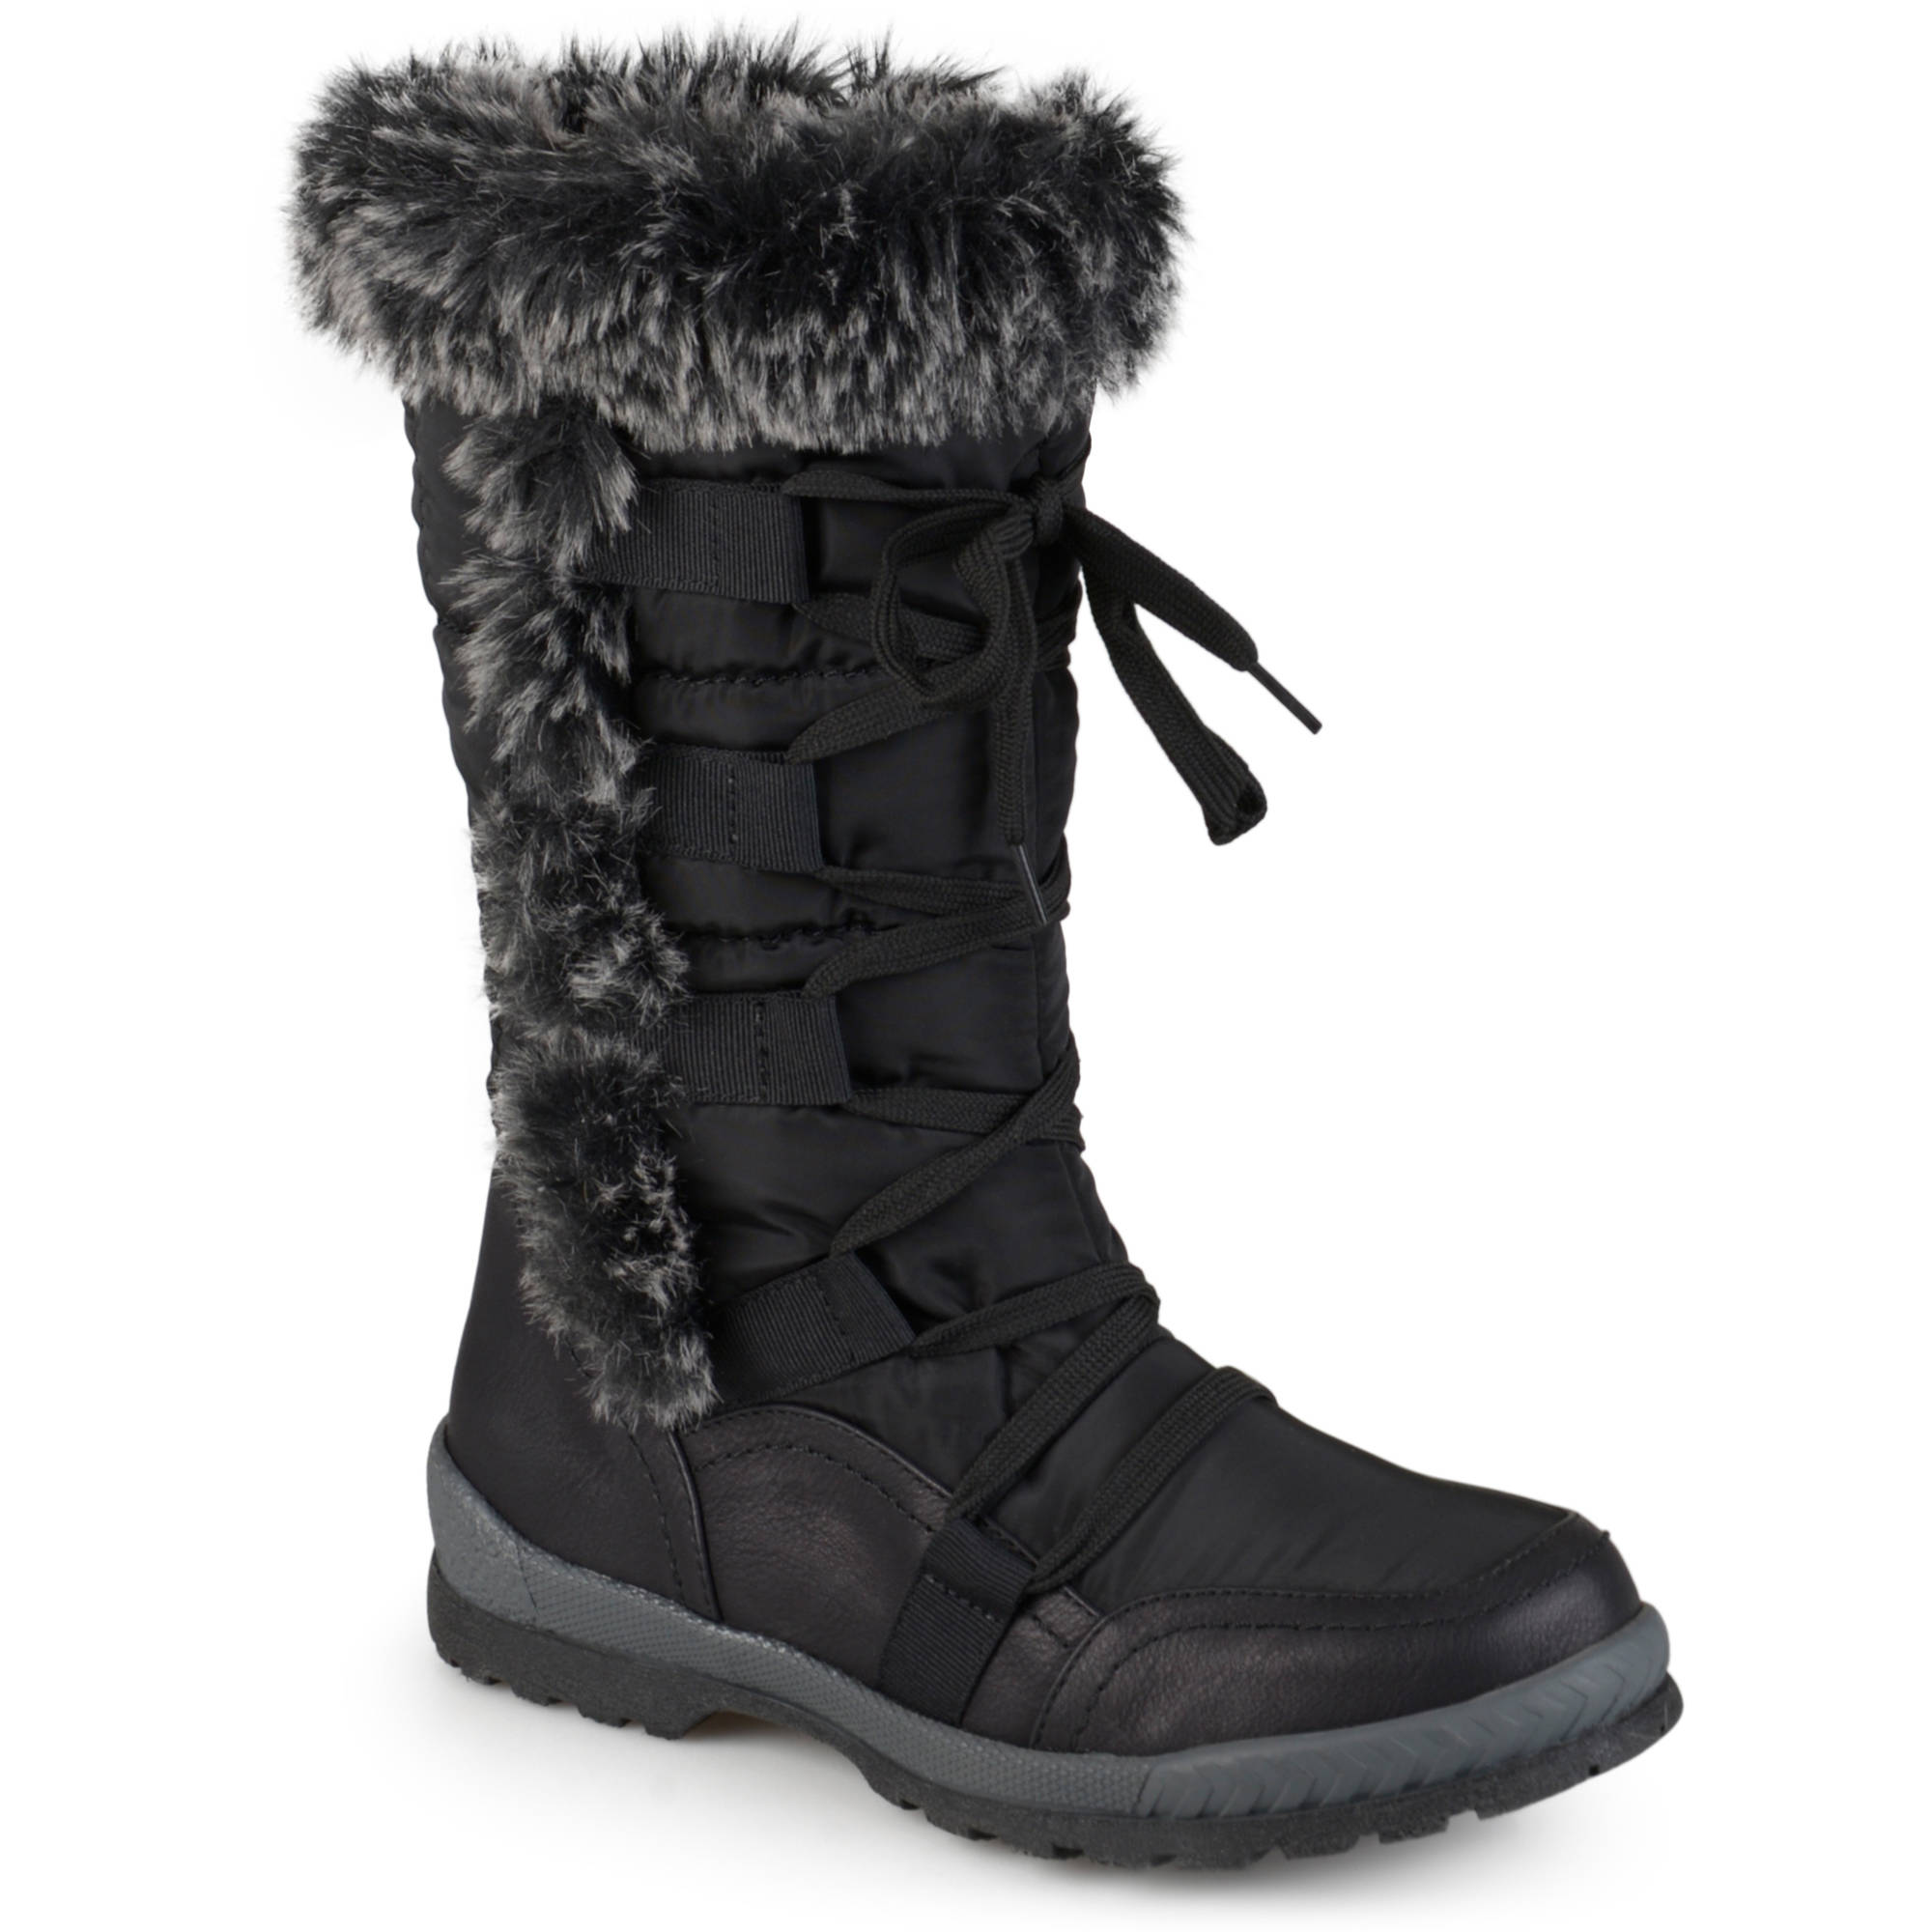 Brinley Co. Womens Cold Weather Faux Fur Boots